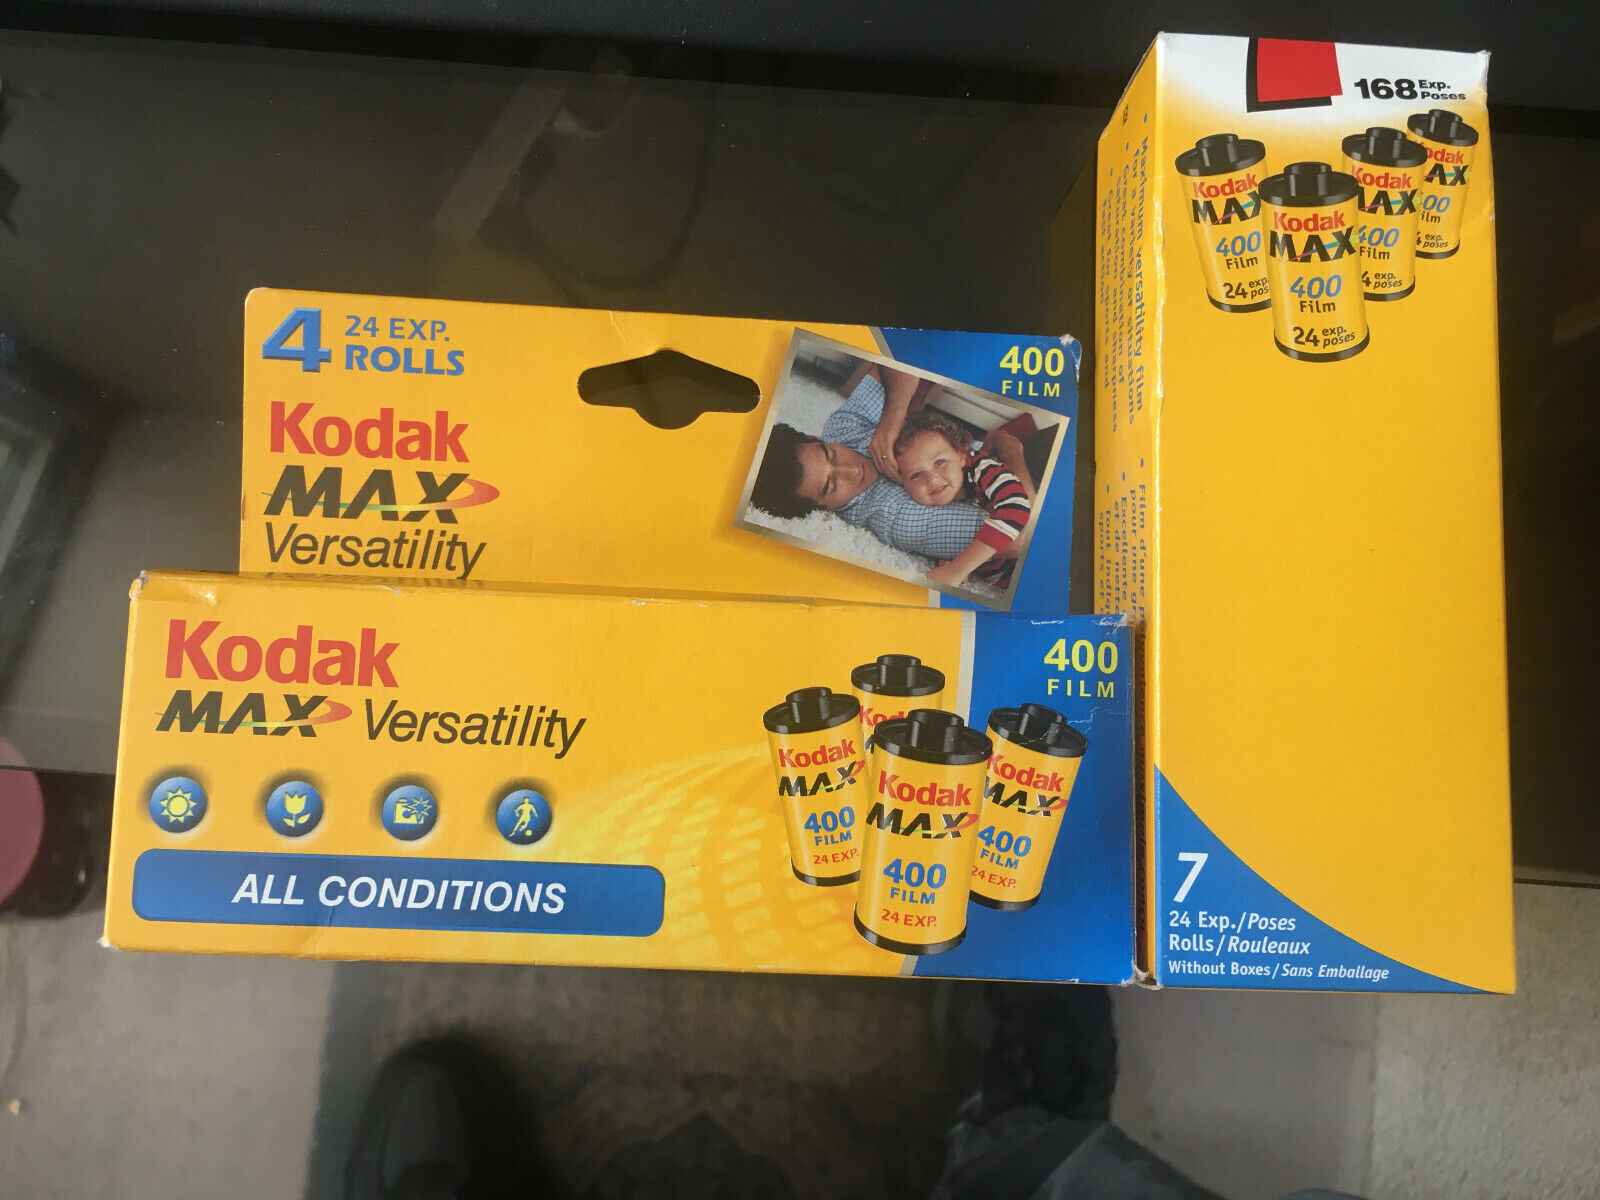 TWO BOXES, CONTAINING 11 7 4 ROLLS OF KODAK MAX 400 FILM, 24 EXPOSURE, EXPIRED  - $22.50